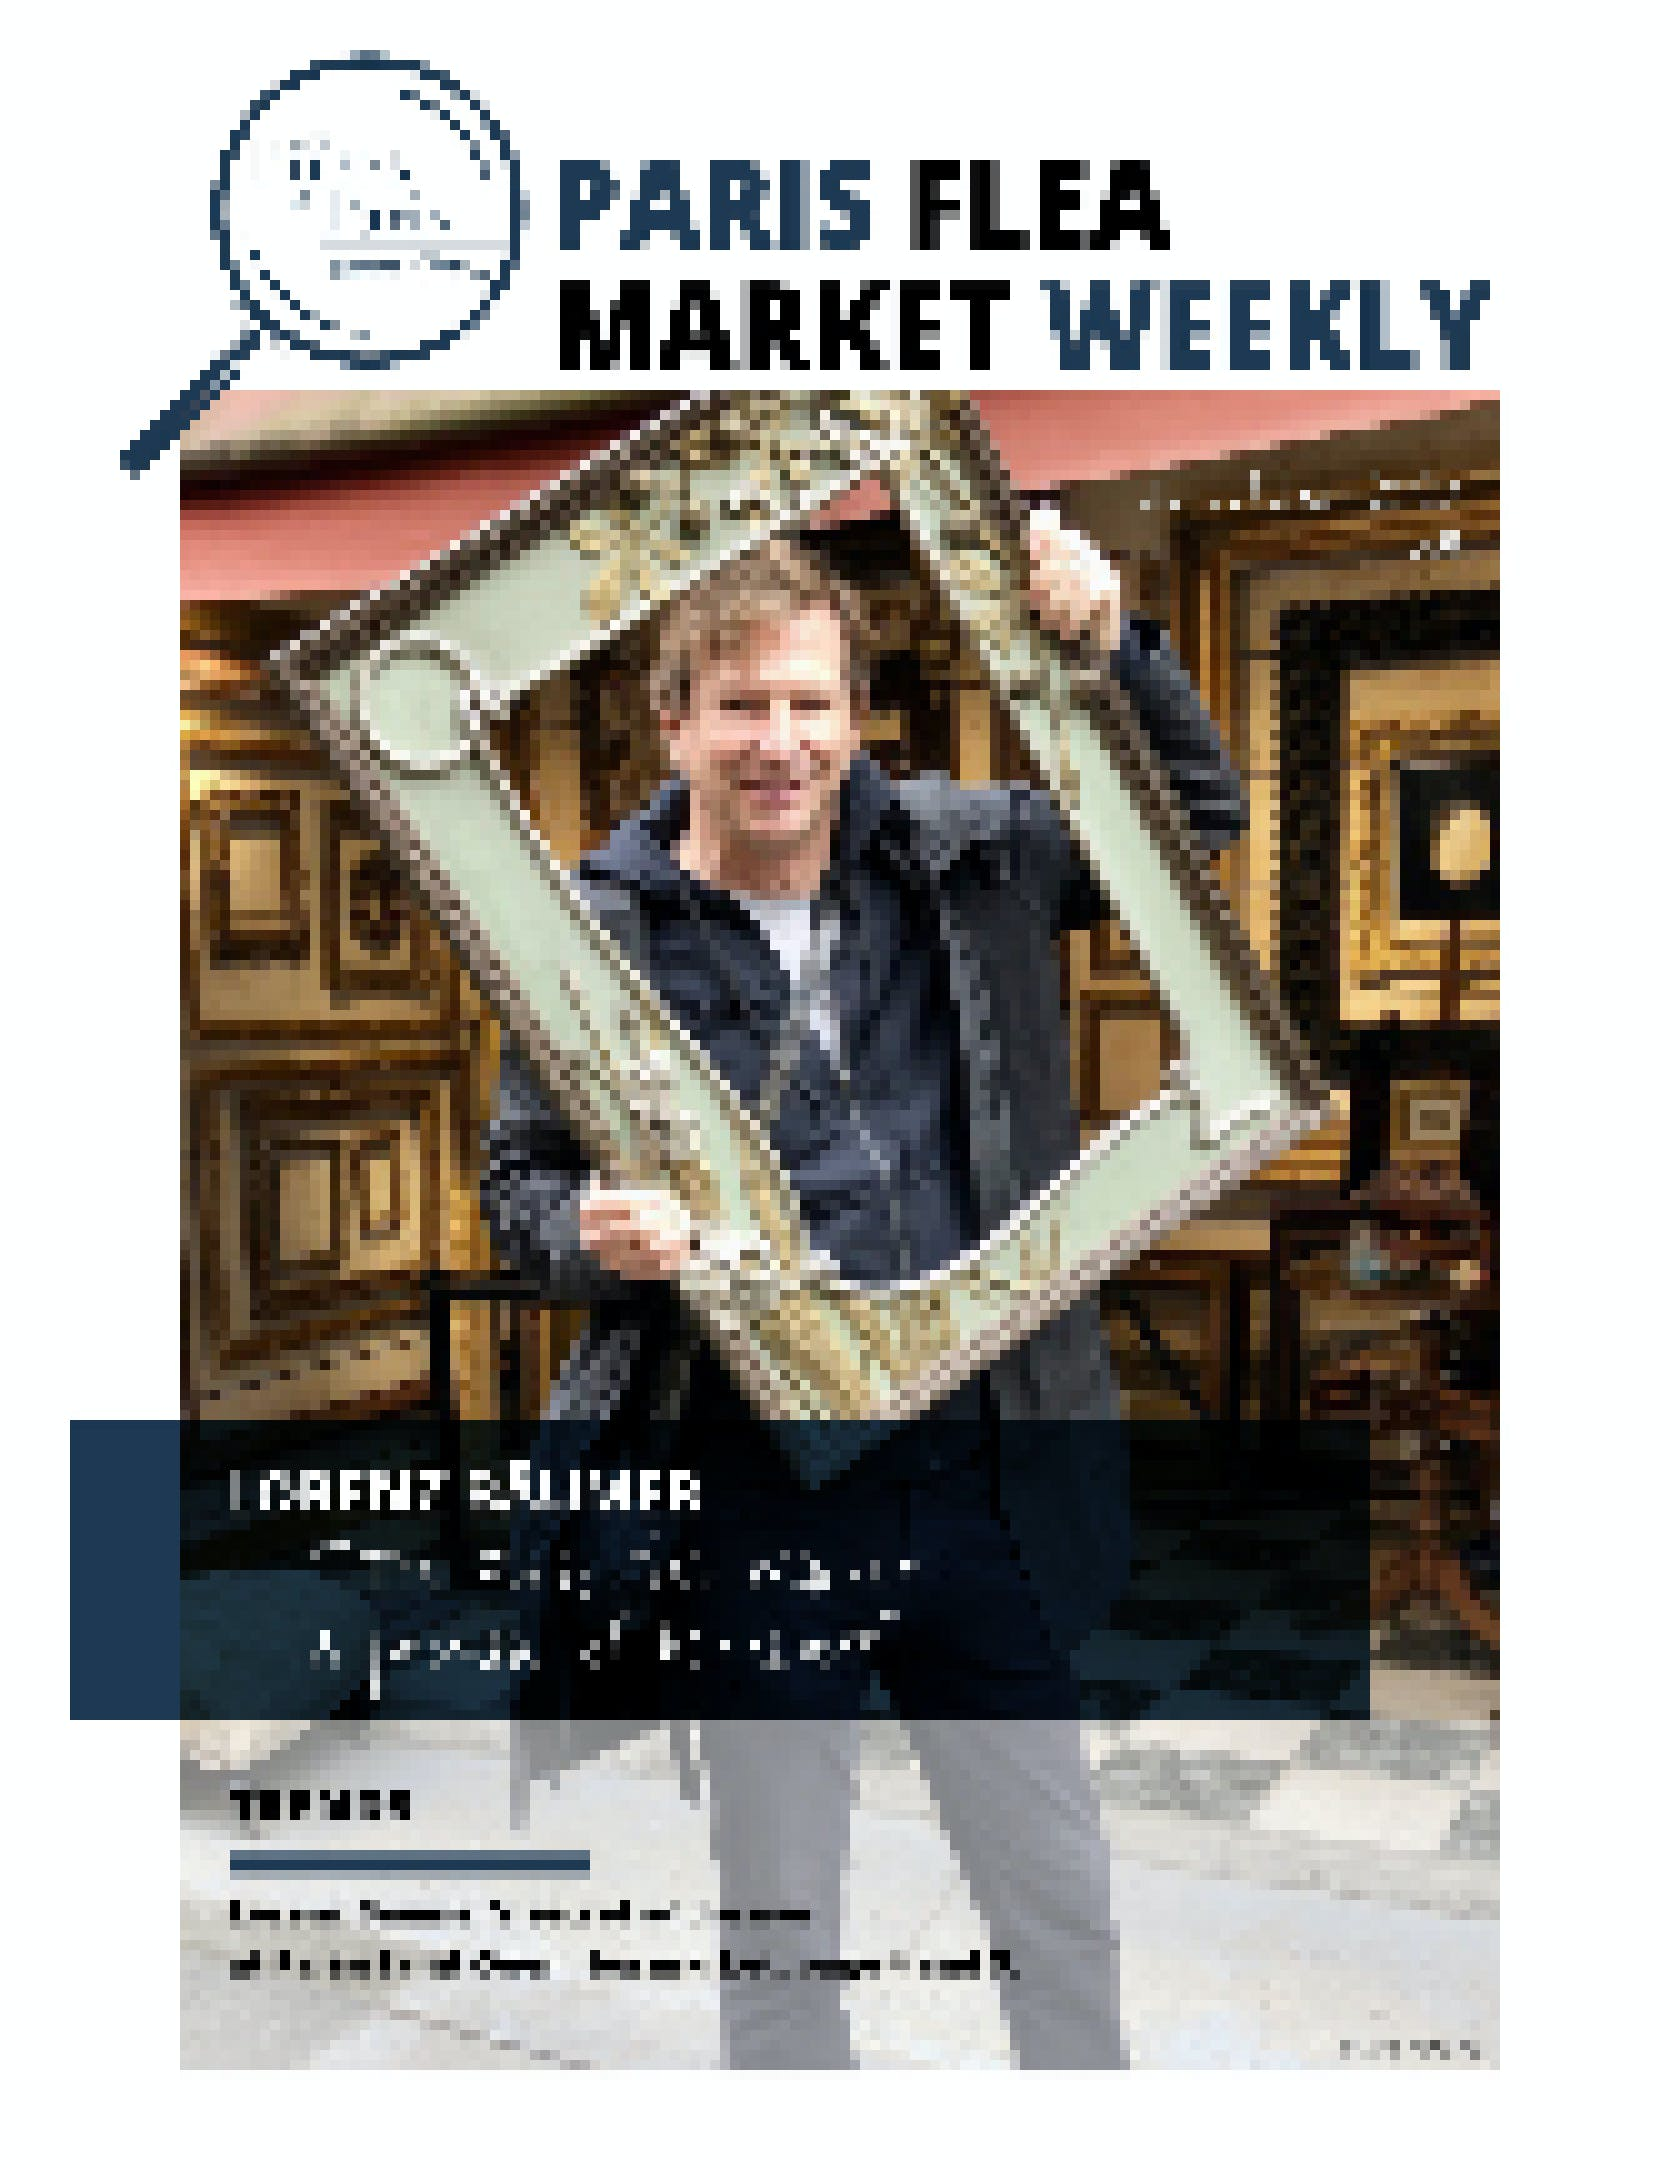 The Paris Flea Market Weekly N° 8 Cover